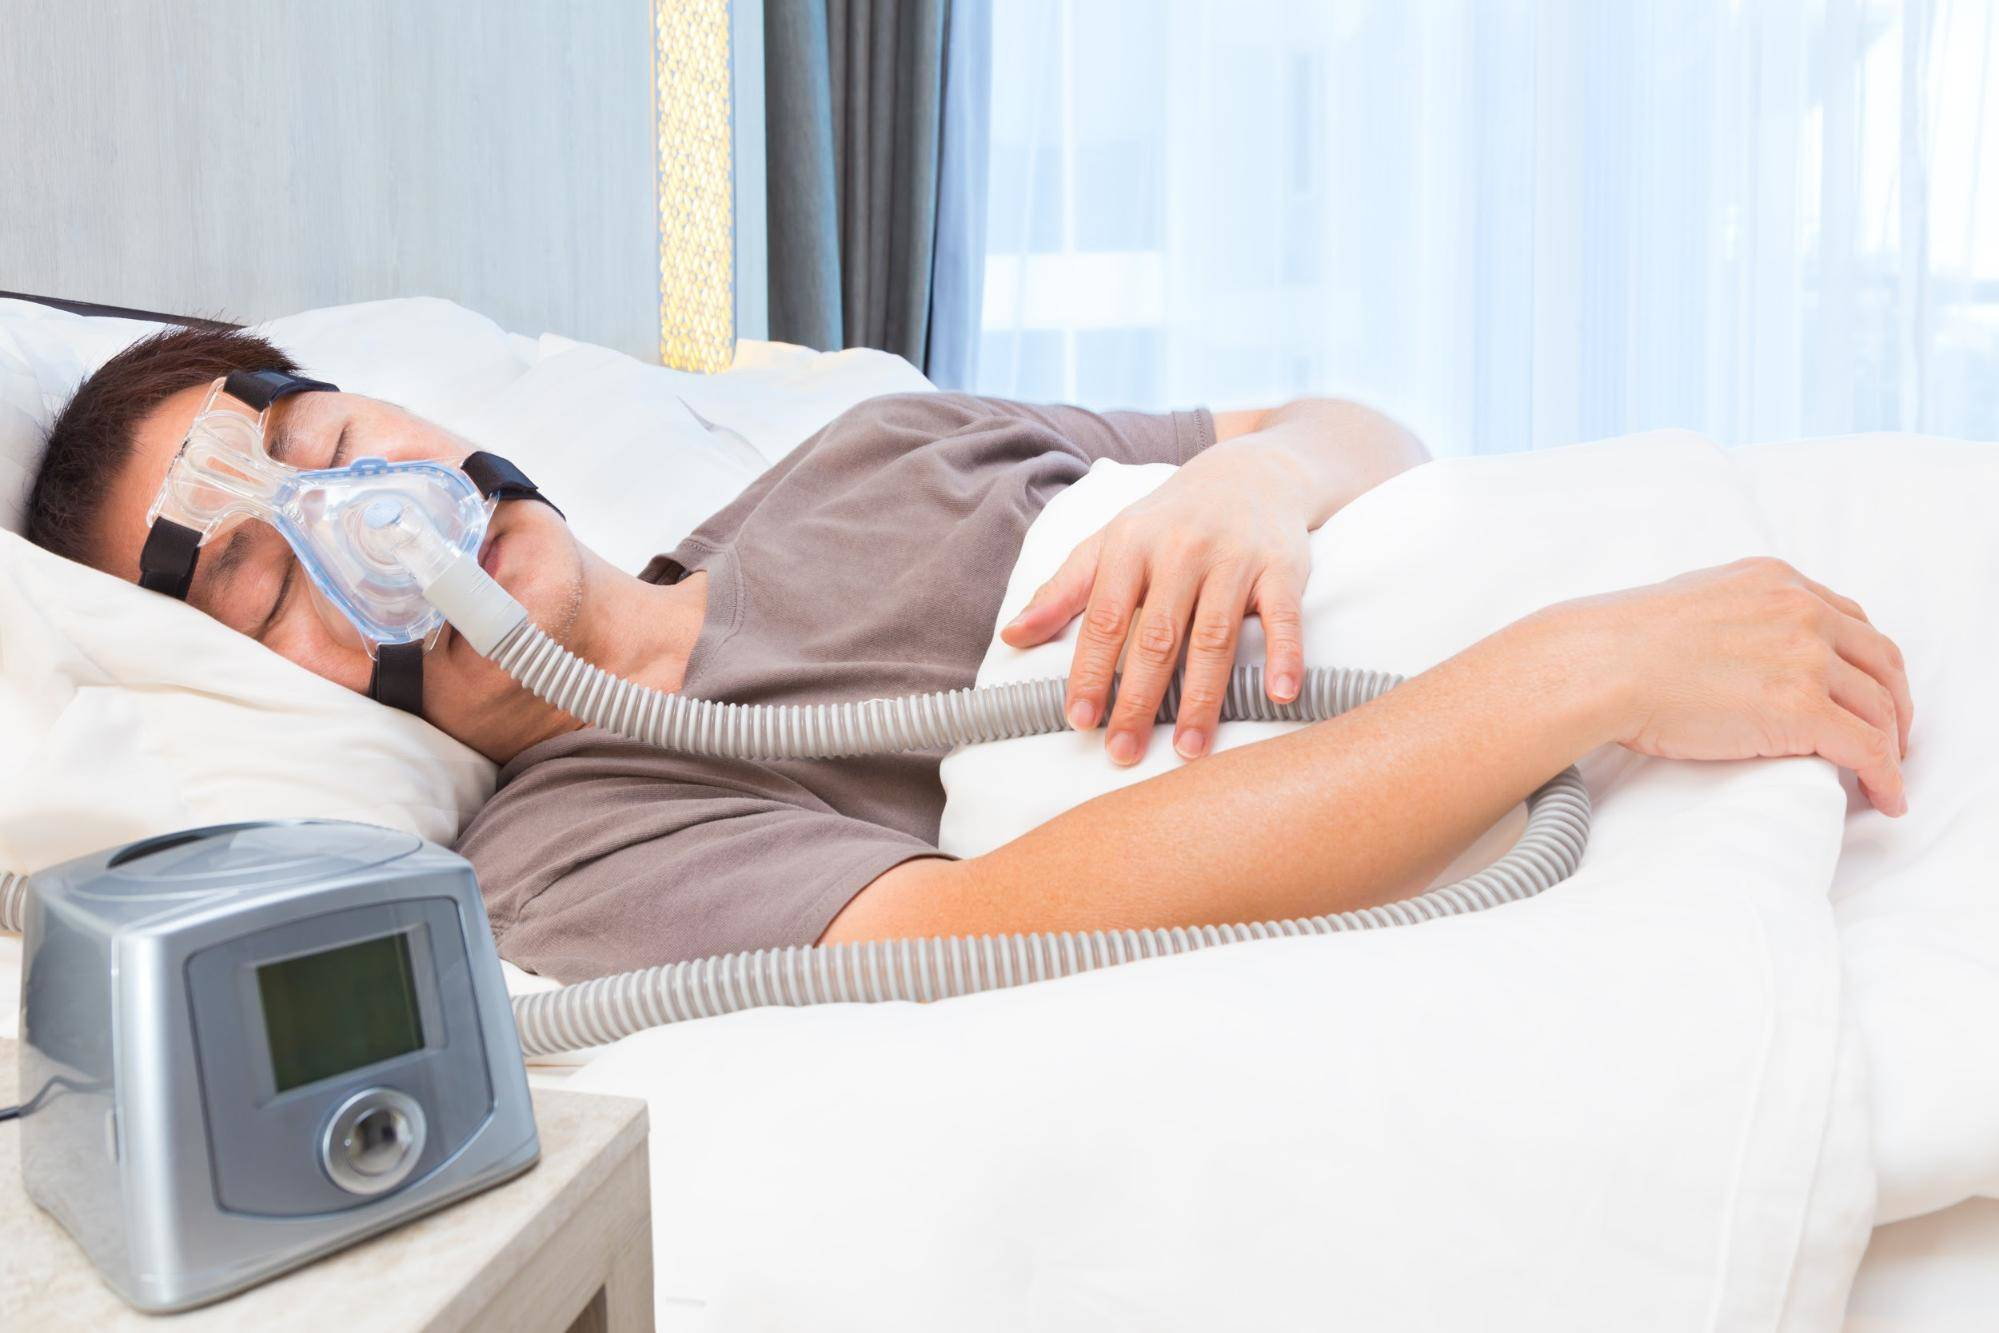 man sleeping in bed with CPAC machine